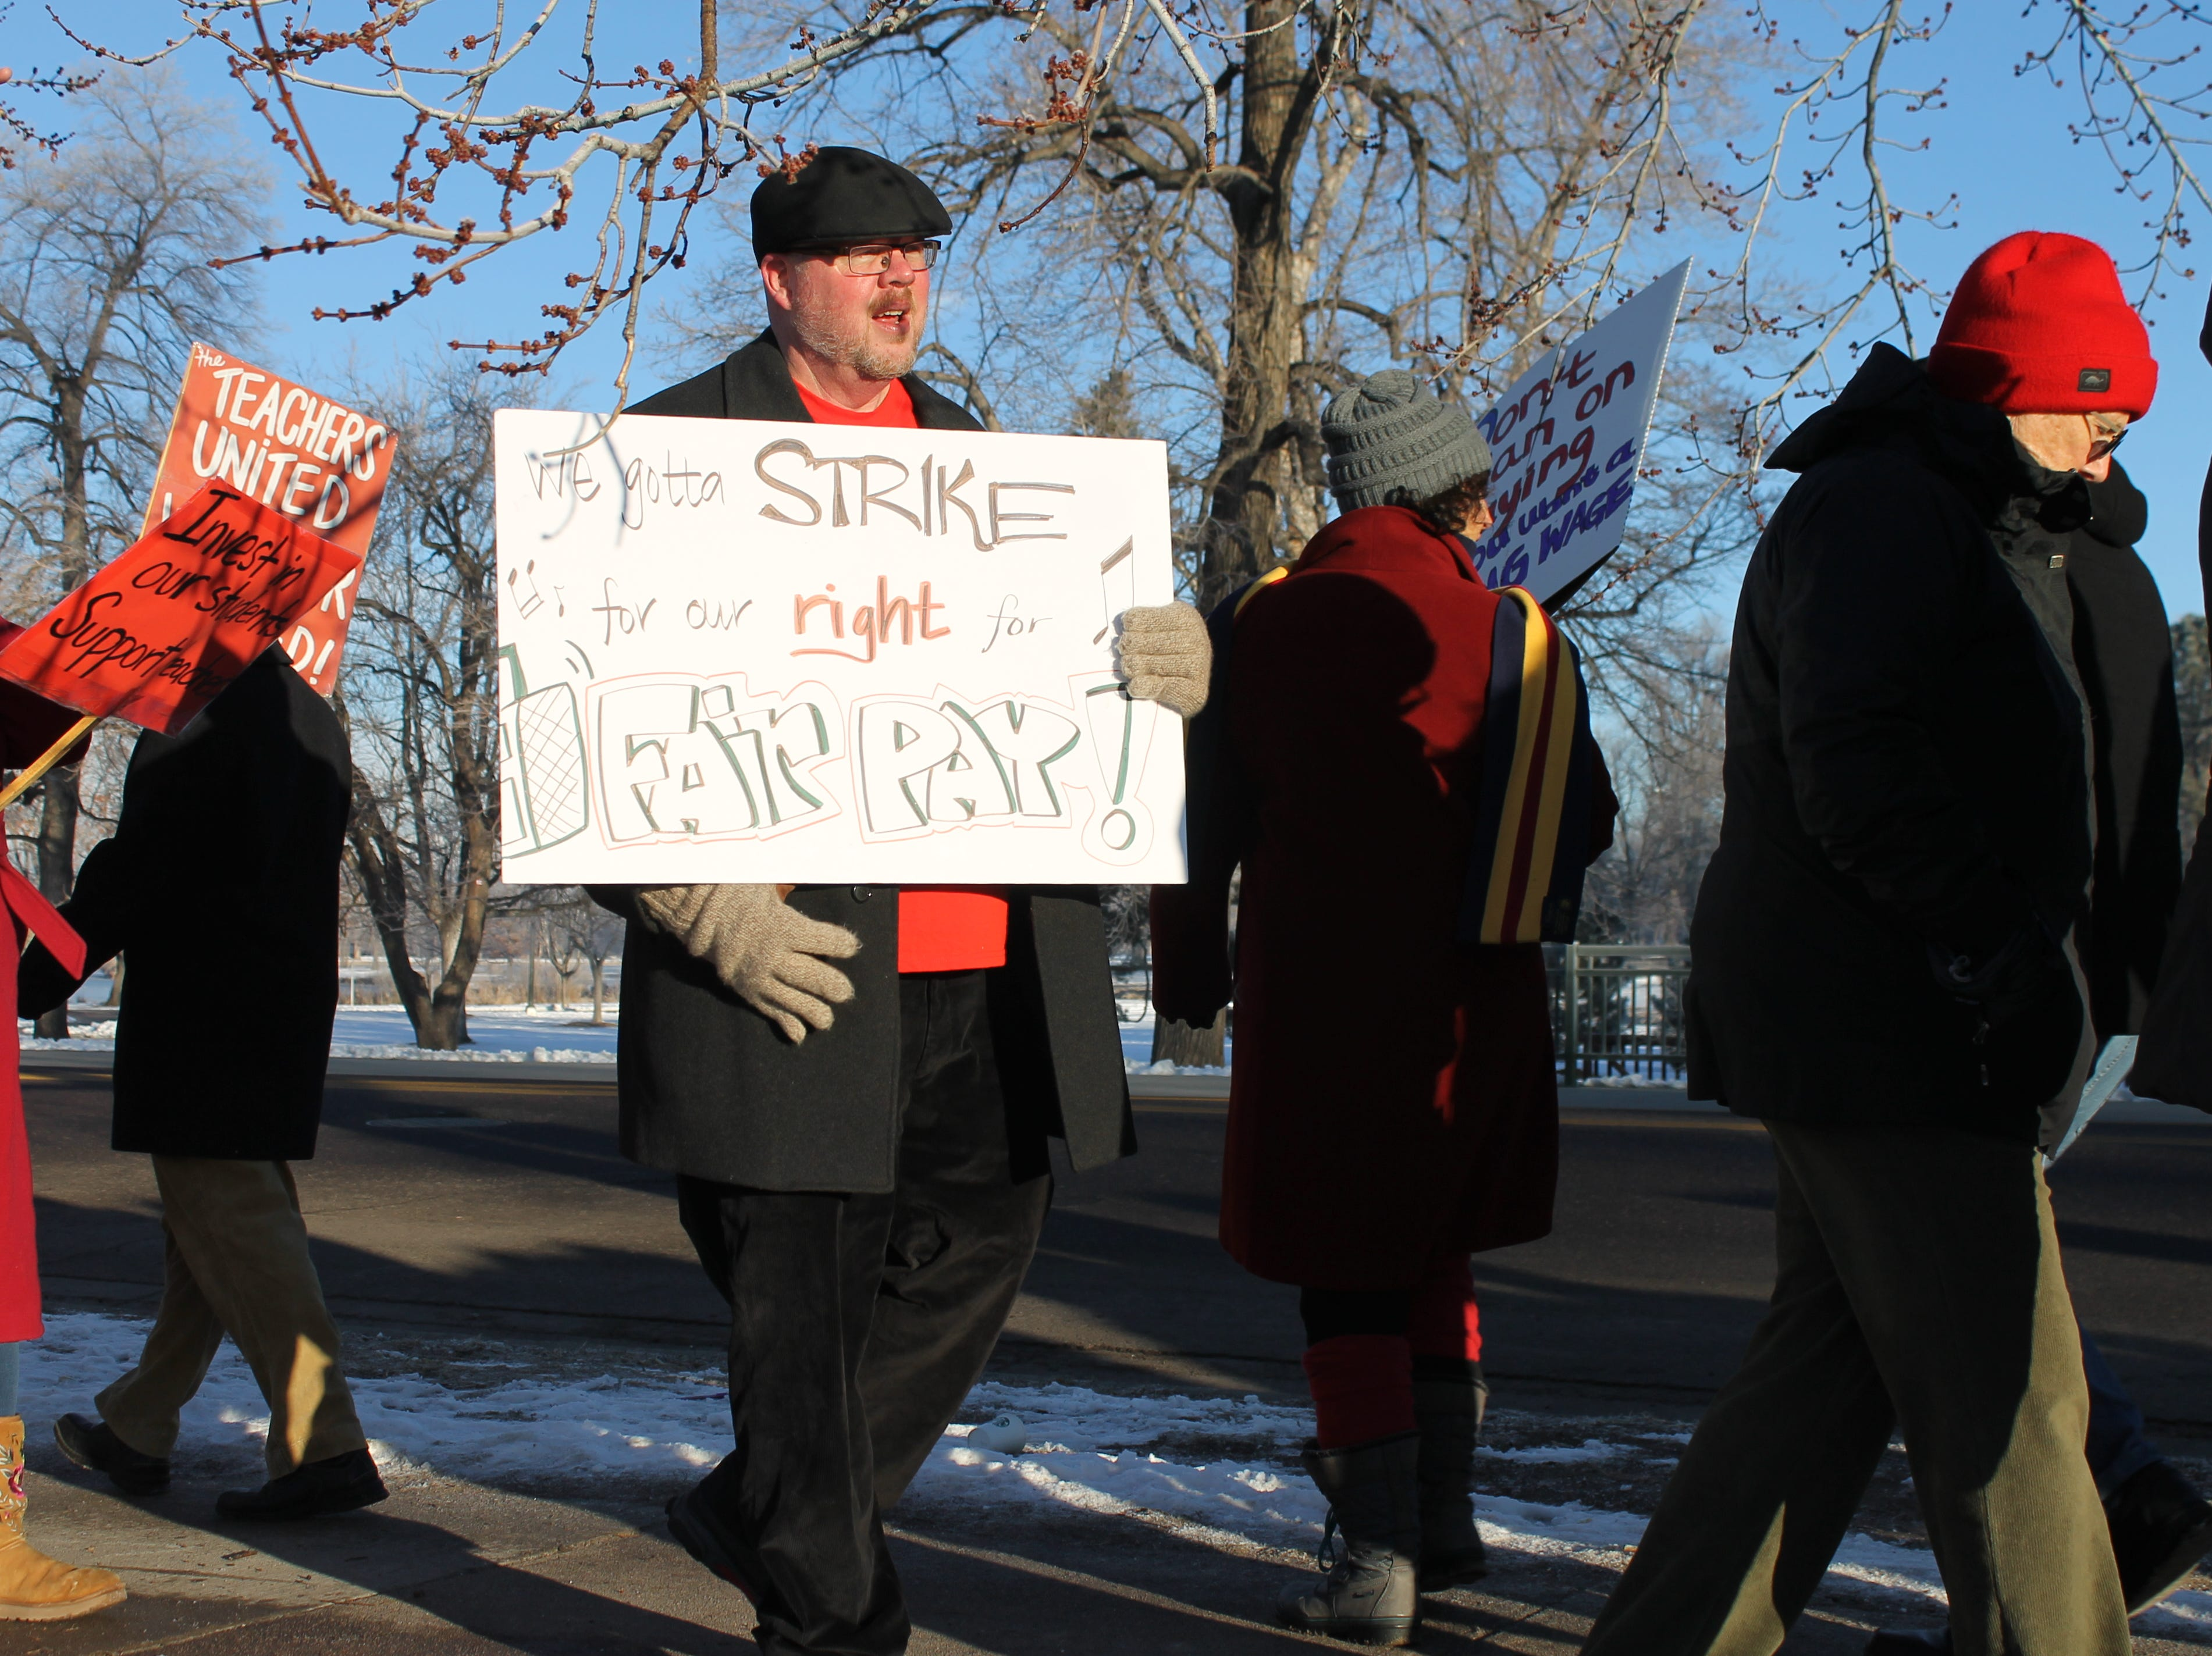 Christopher Ritchie, a teacher at South High School, marches with his fellow teachers Monday. It's the first time in 25 years Denver teachers have gone on strike. Teachers are calling for changes to the pro-comp pay system, which many say leaves them unable to predict their income in the long-term.